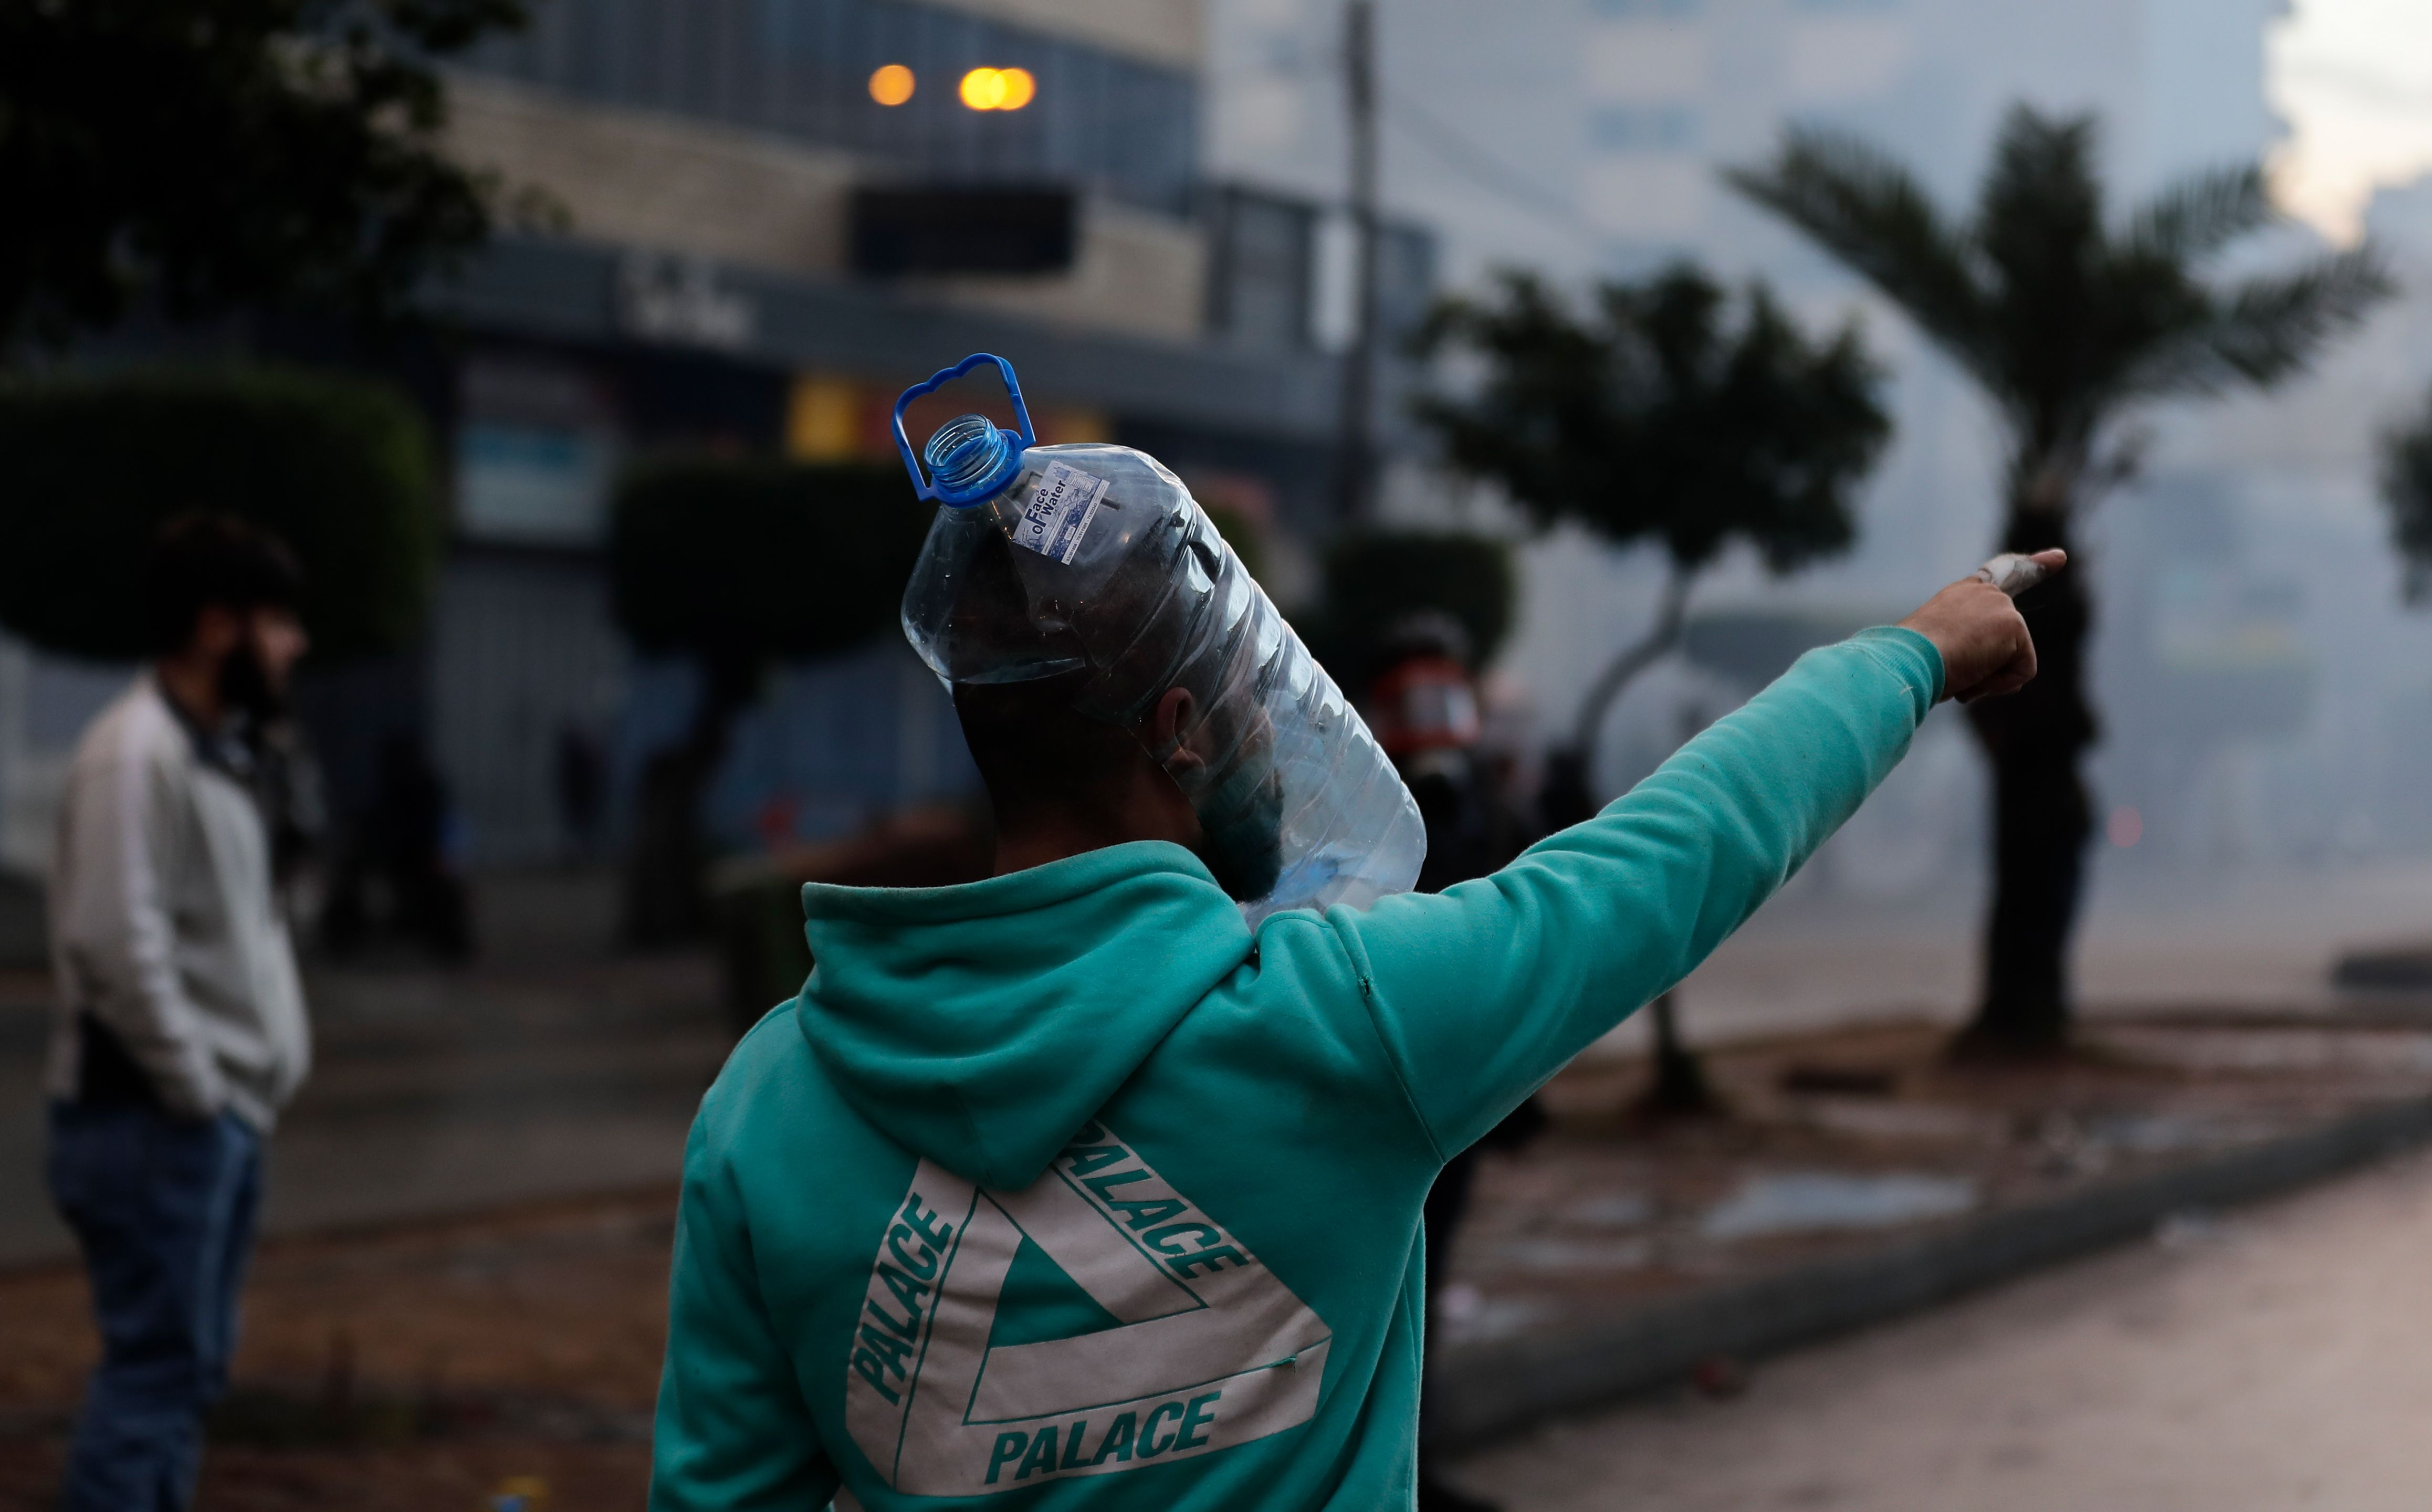 TOPSHOT - A Lebanese anti-government protester wearing a water bottle as a shield points during clashes with security forces in…